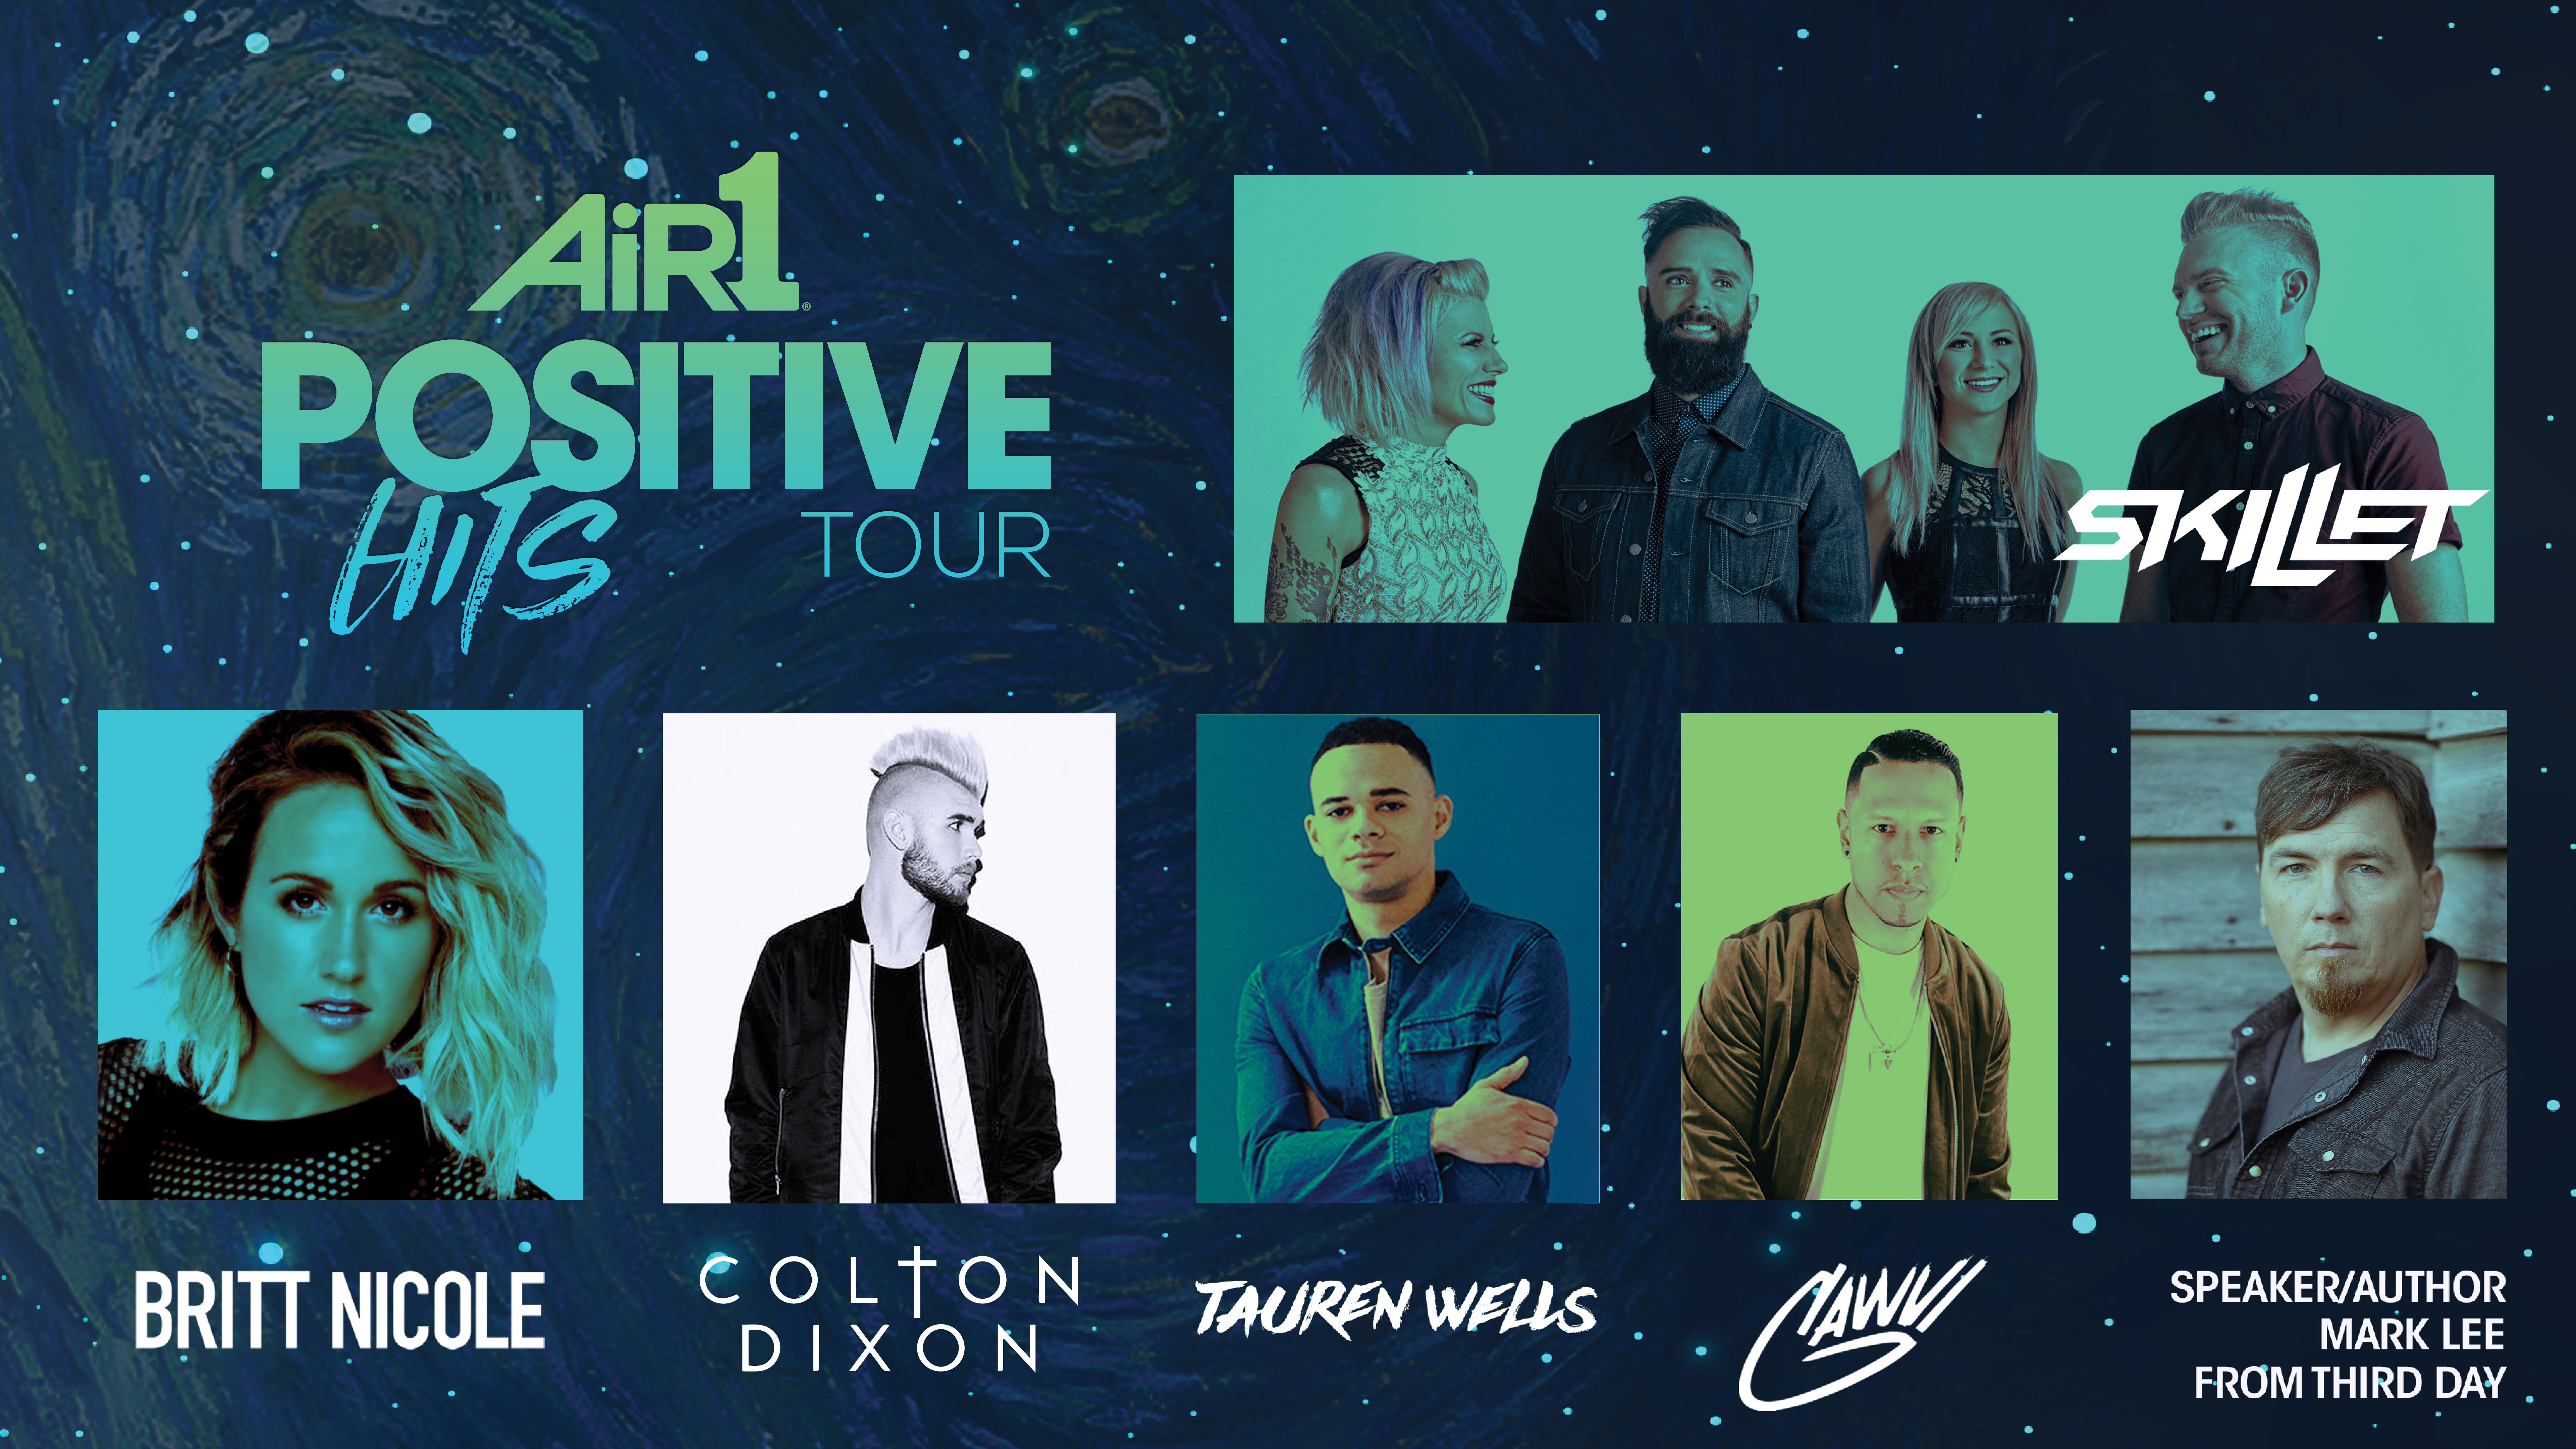 Positive Hits Tour featuring Skillet Britt Nicole Colton Dixon Tauren Wells Gawvi & special guest speaker Mark Lee